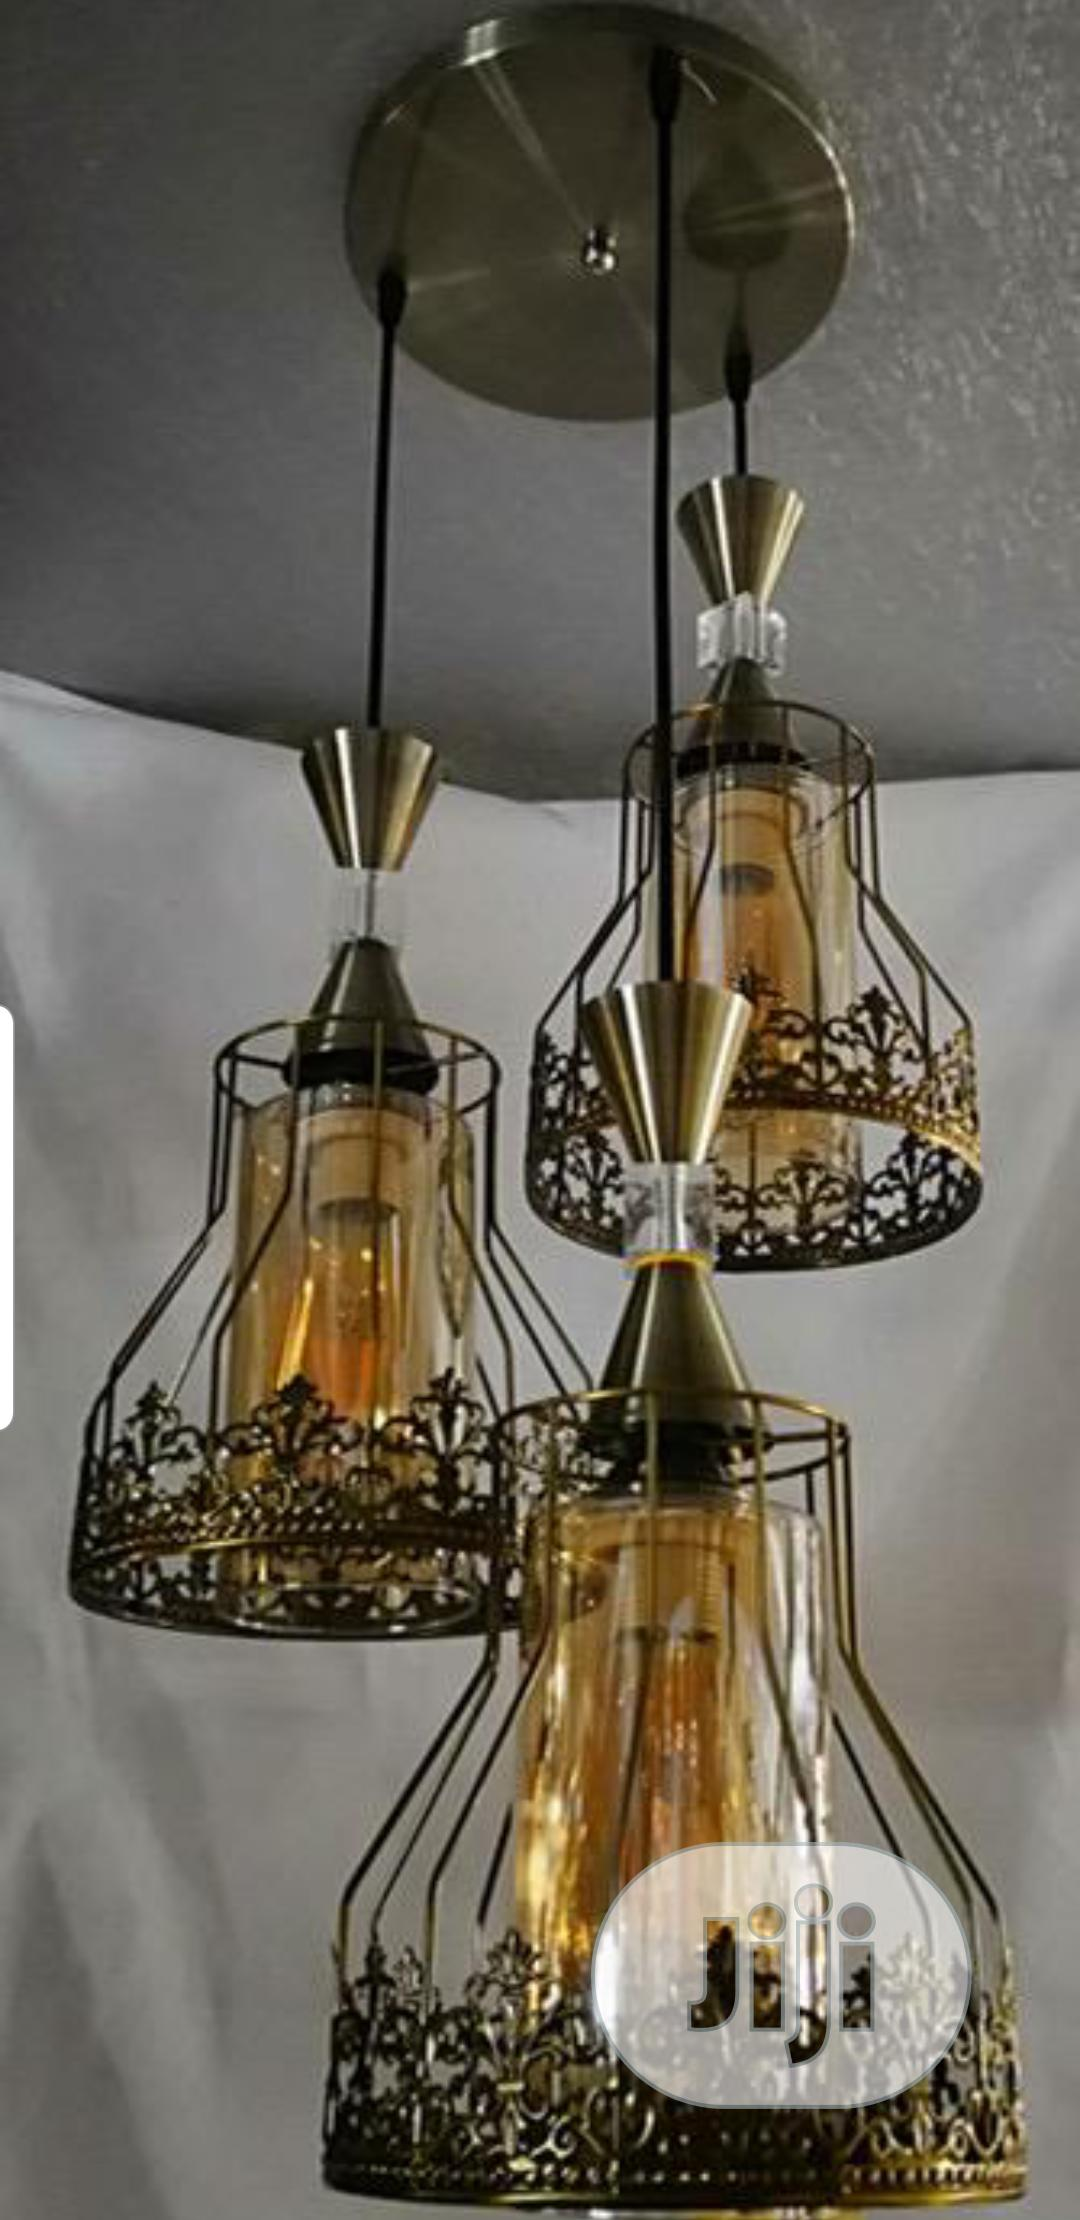 3 In 1 2020 Lsl Pendant | Home Accessories for sale in Lagos Island, Lagos State, Nigeria